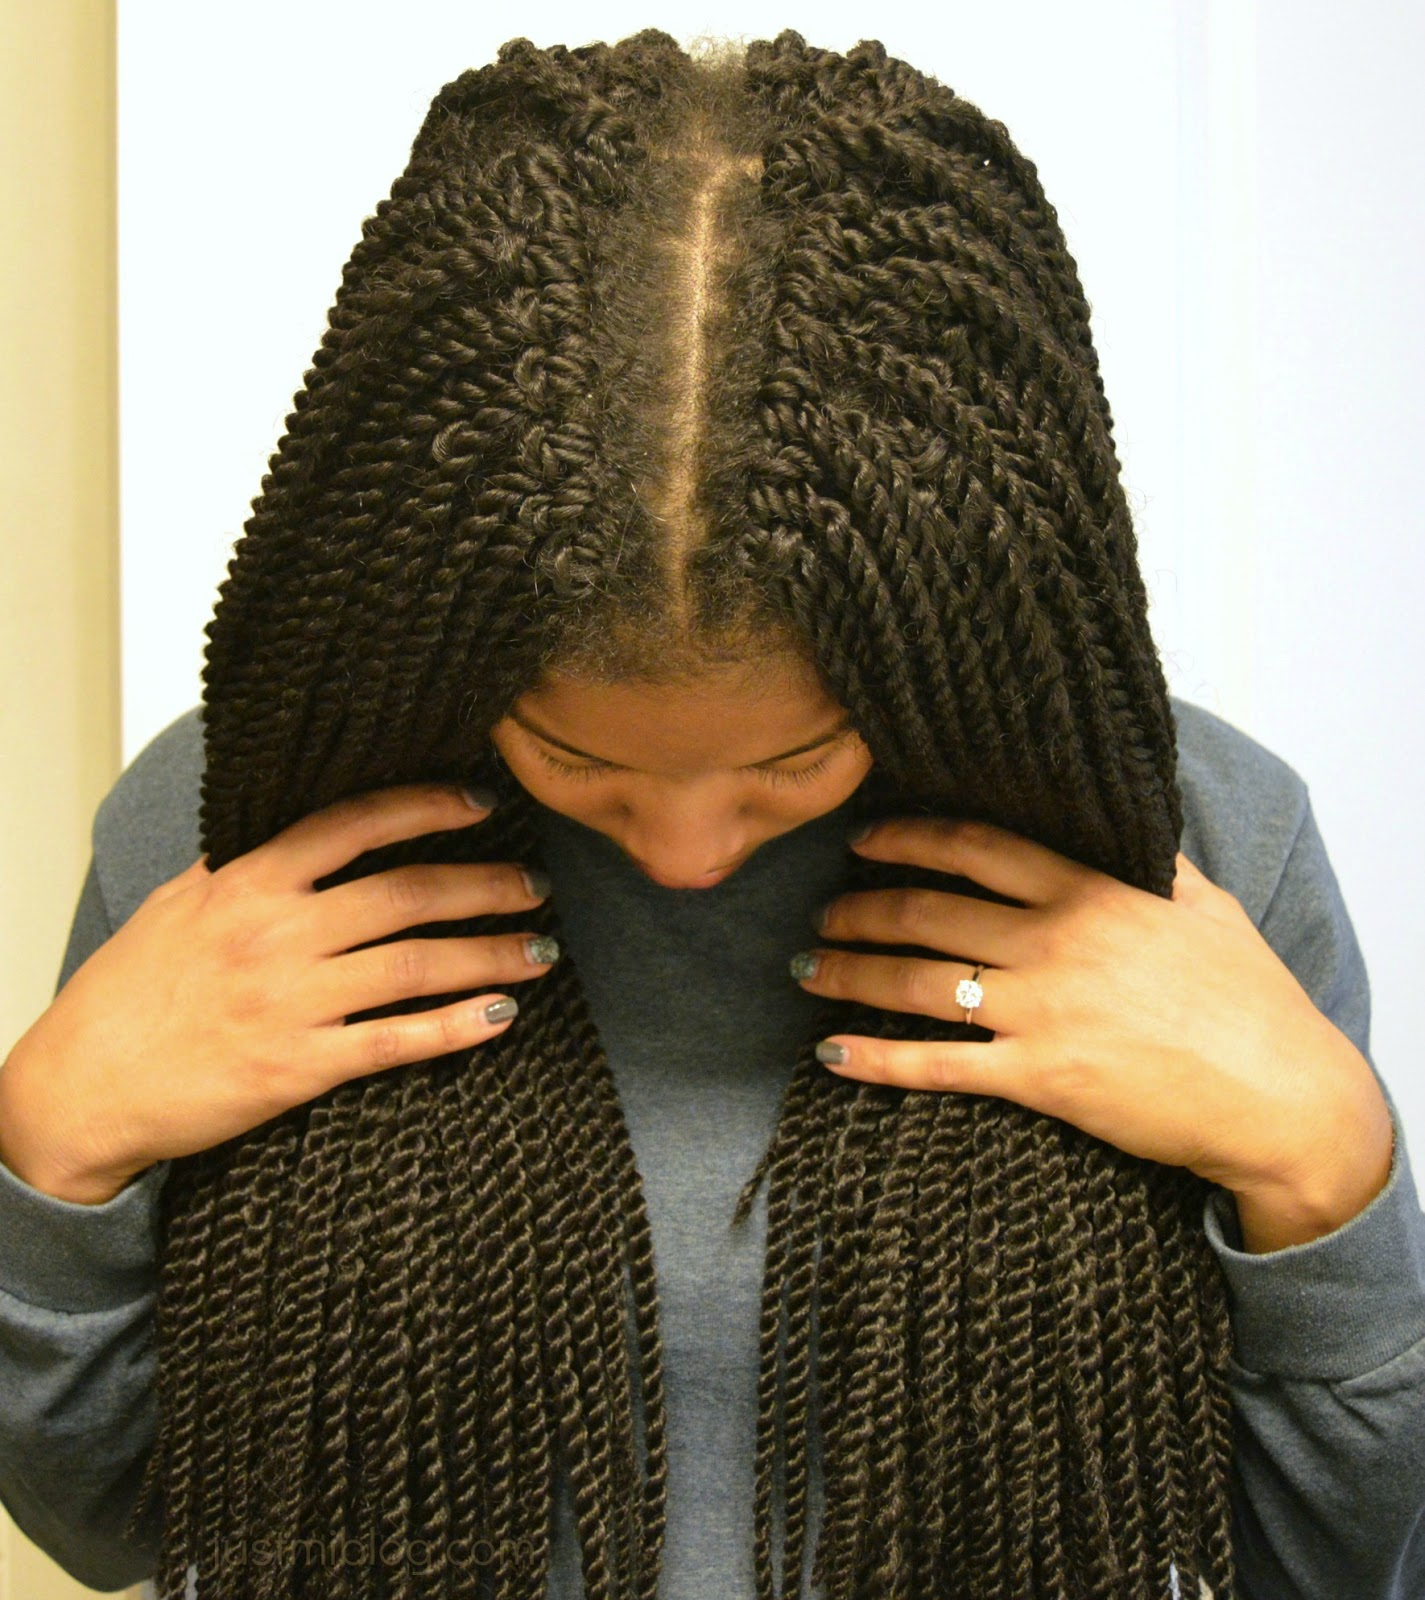 3 Things To Remember With Crochet Braids